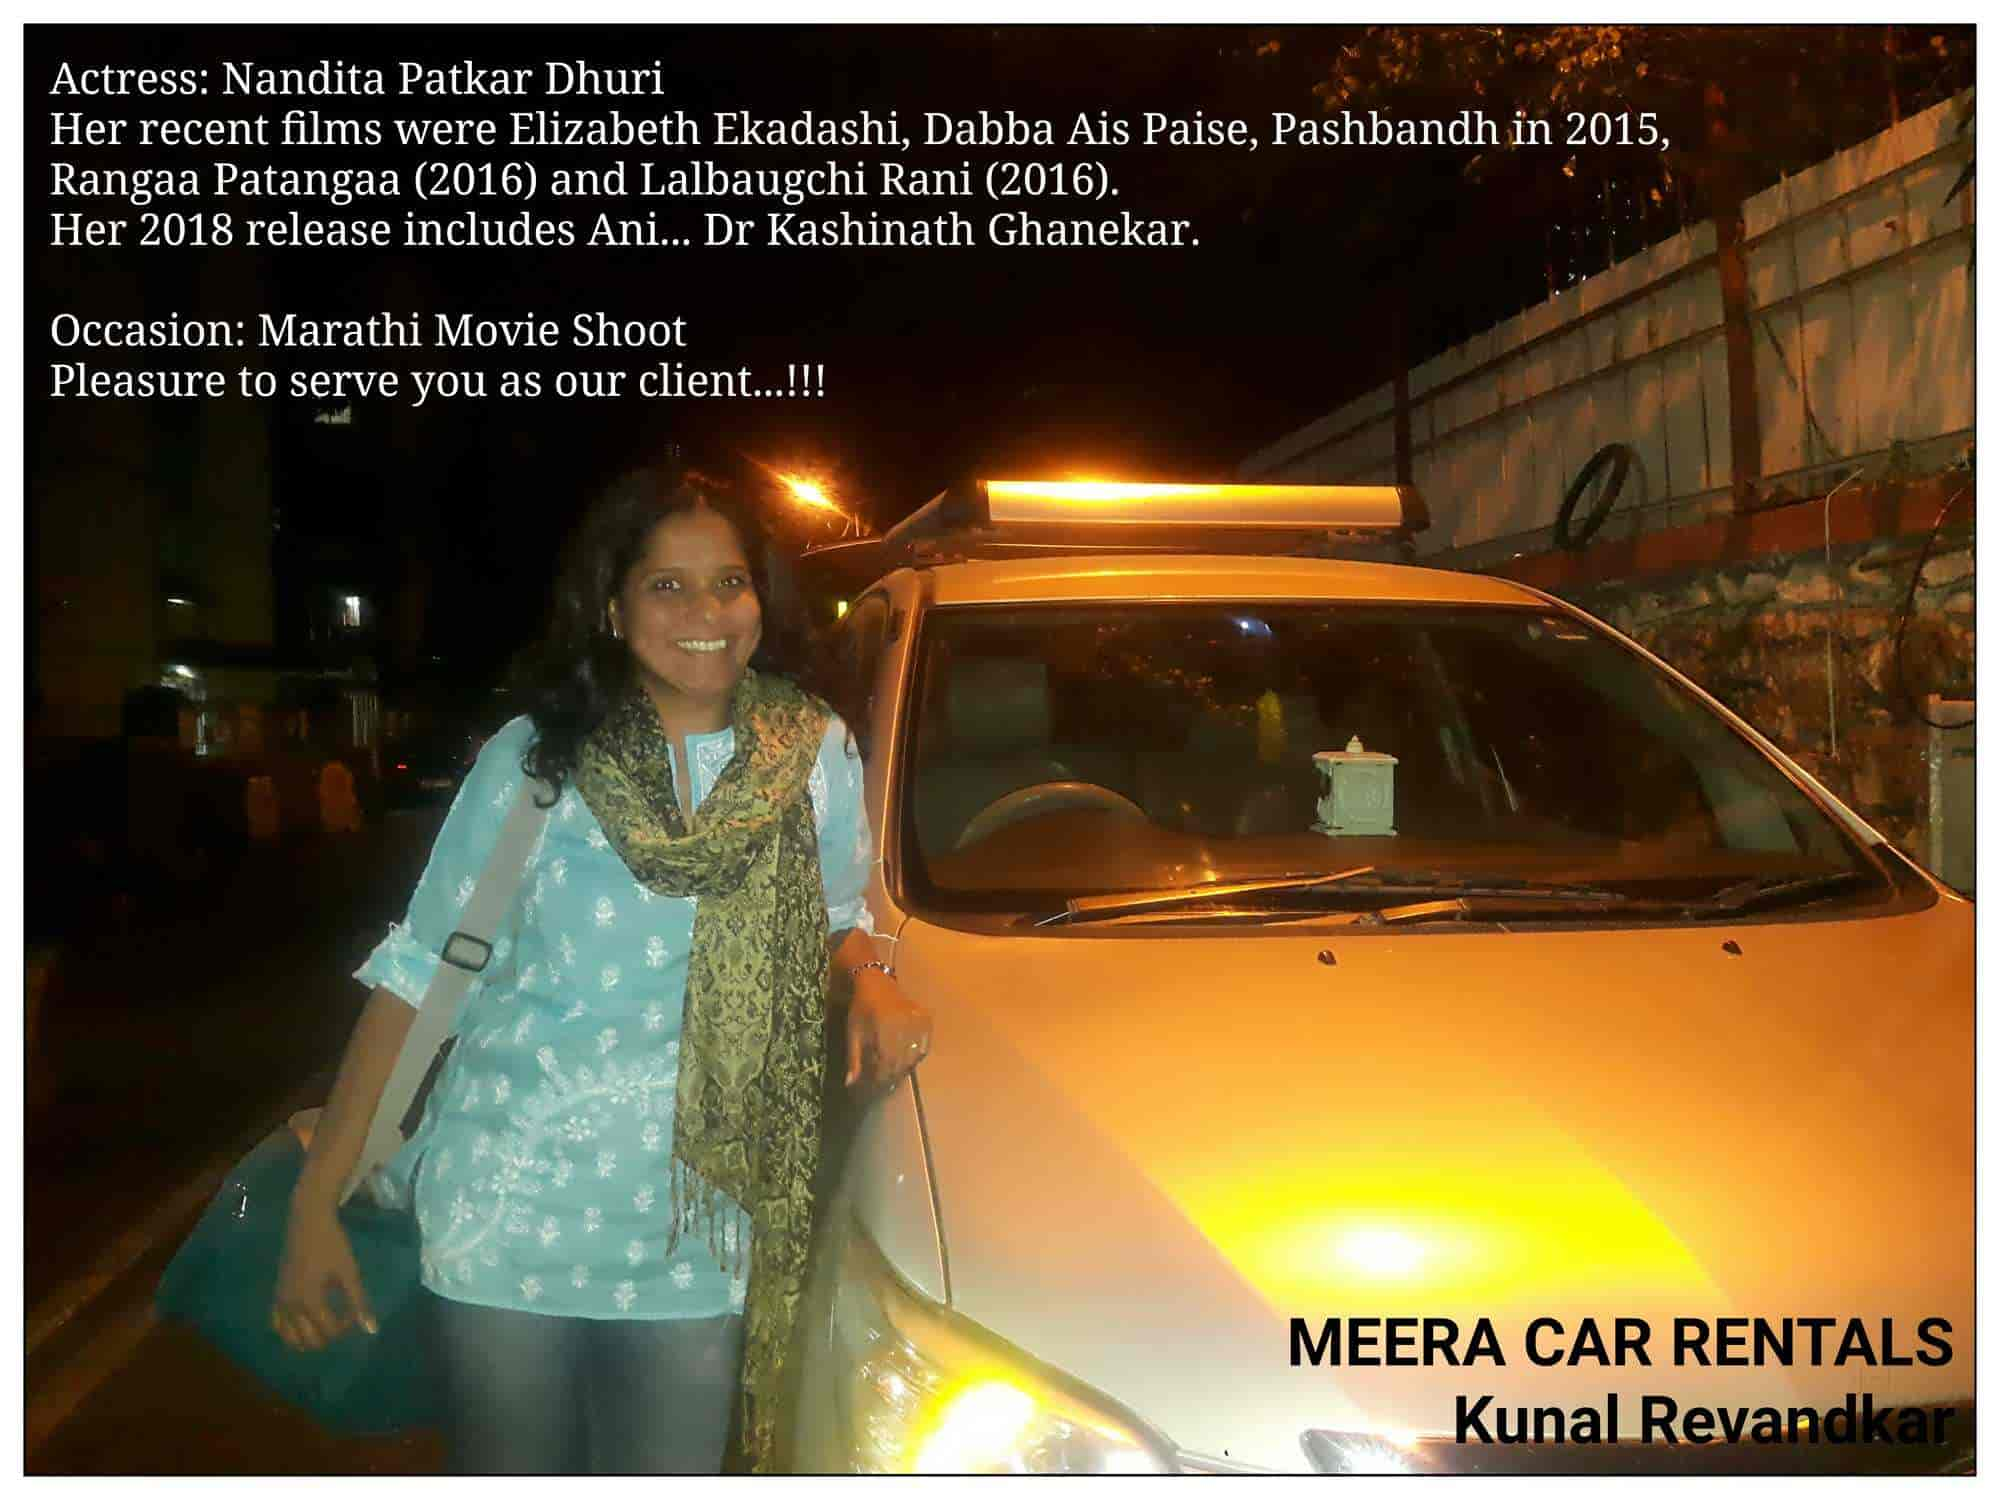 Meera Car Rentals Borivali West 24 Hours Car Hire In Mumbai